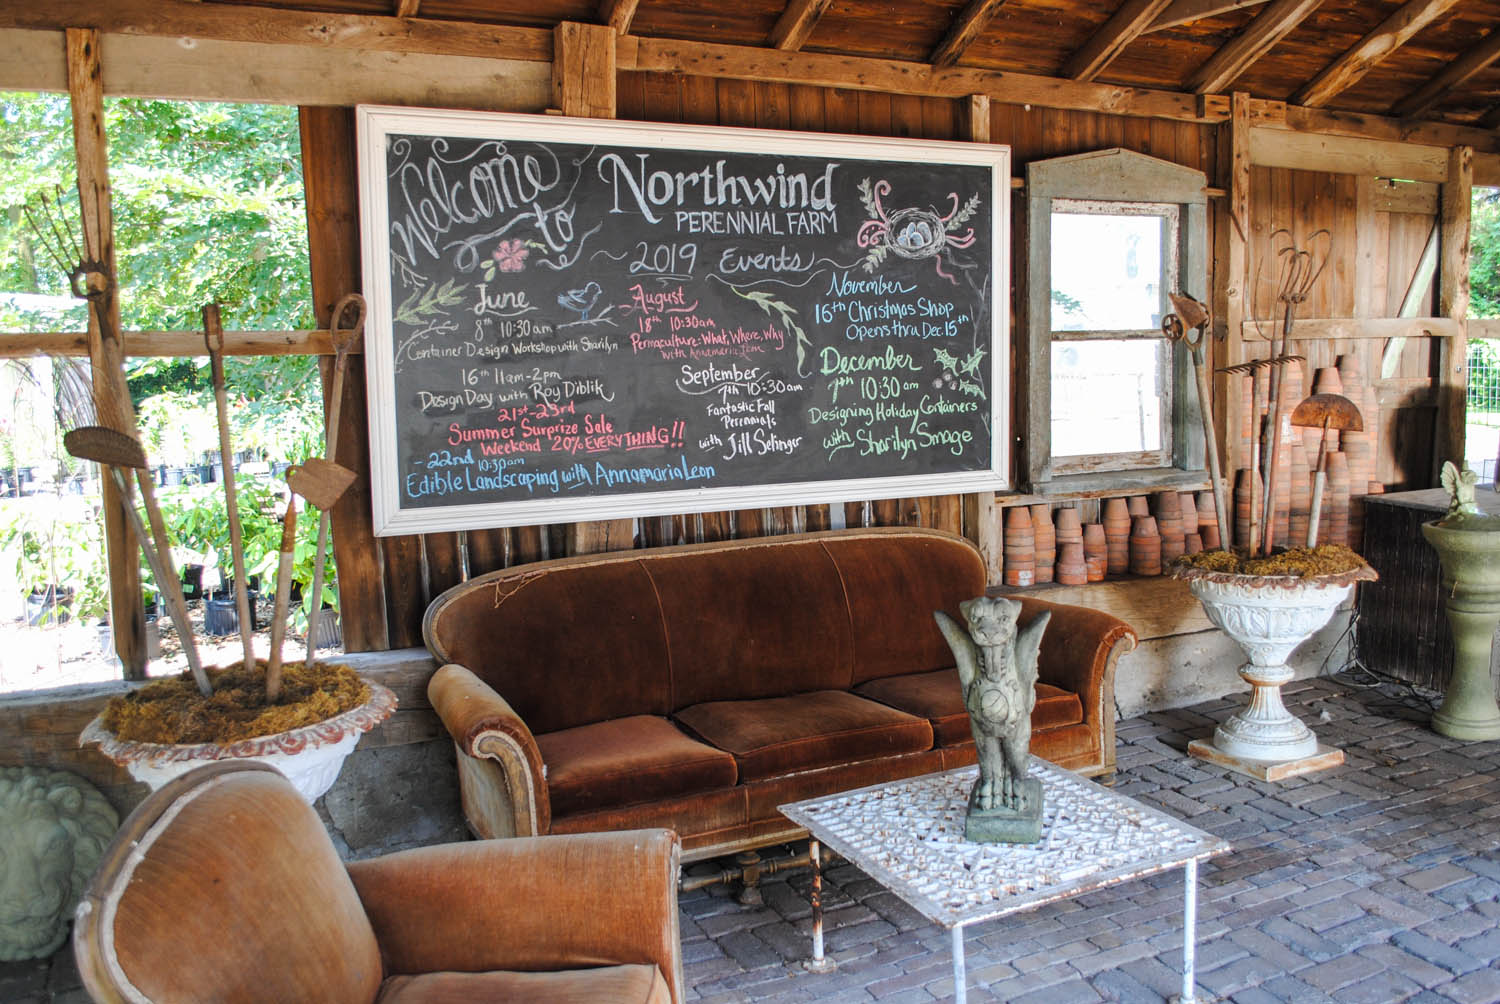 This cute little sitting area was just outside the barn. Notice how the chalkboard features many events for the coming year.